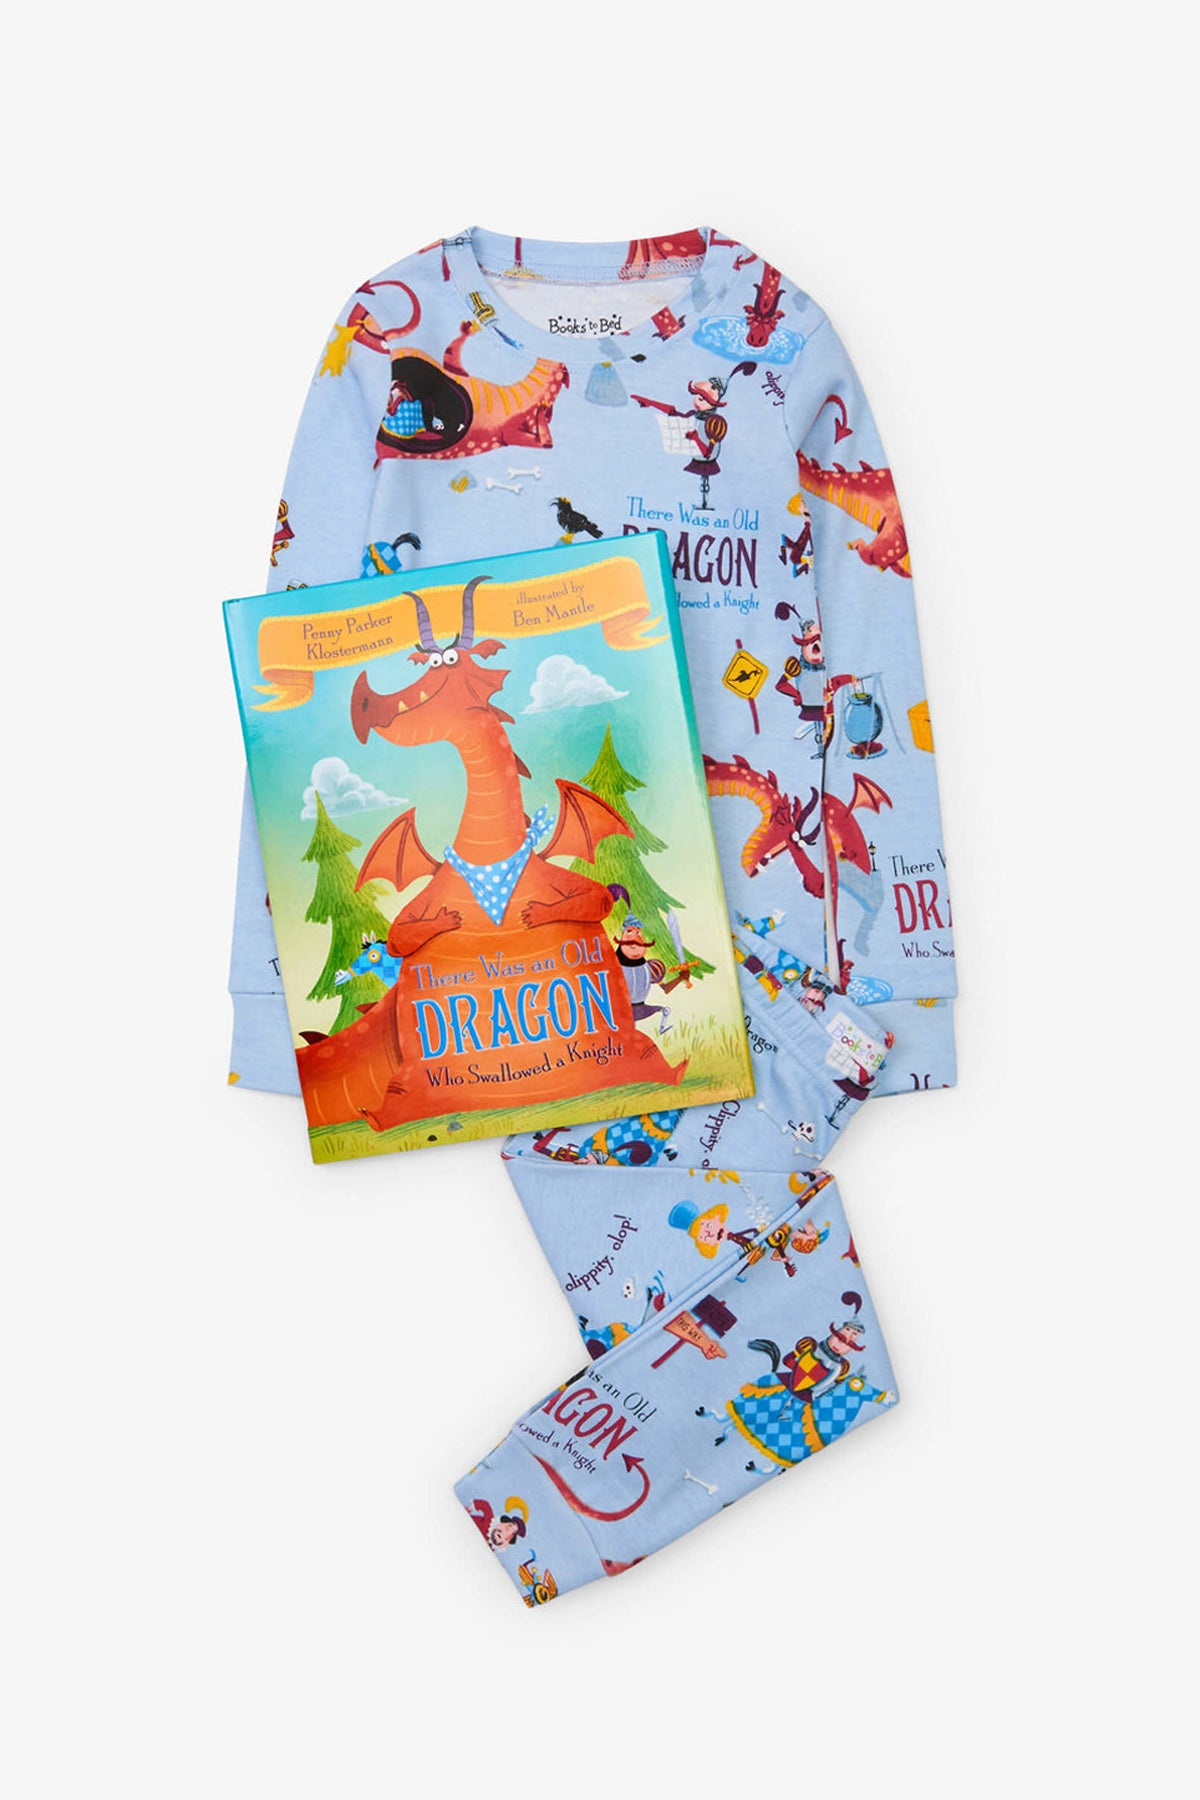 Books To Bed There Was An Old Dragon Who Swallowed A Knight Kids Pajamas and Book Set